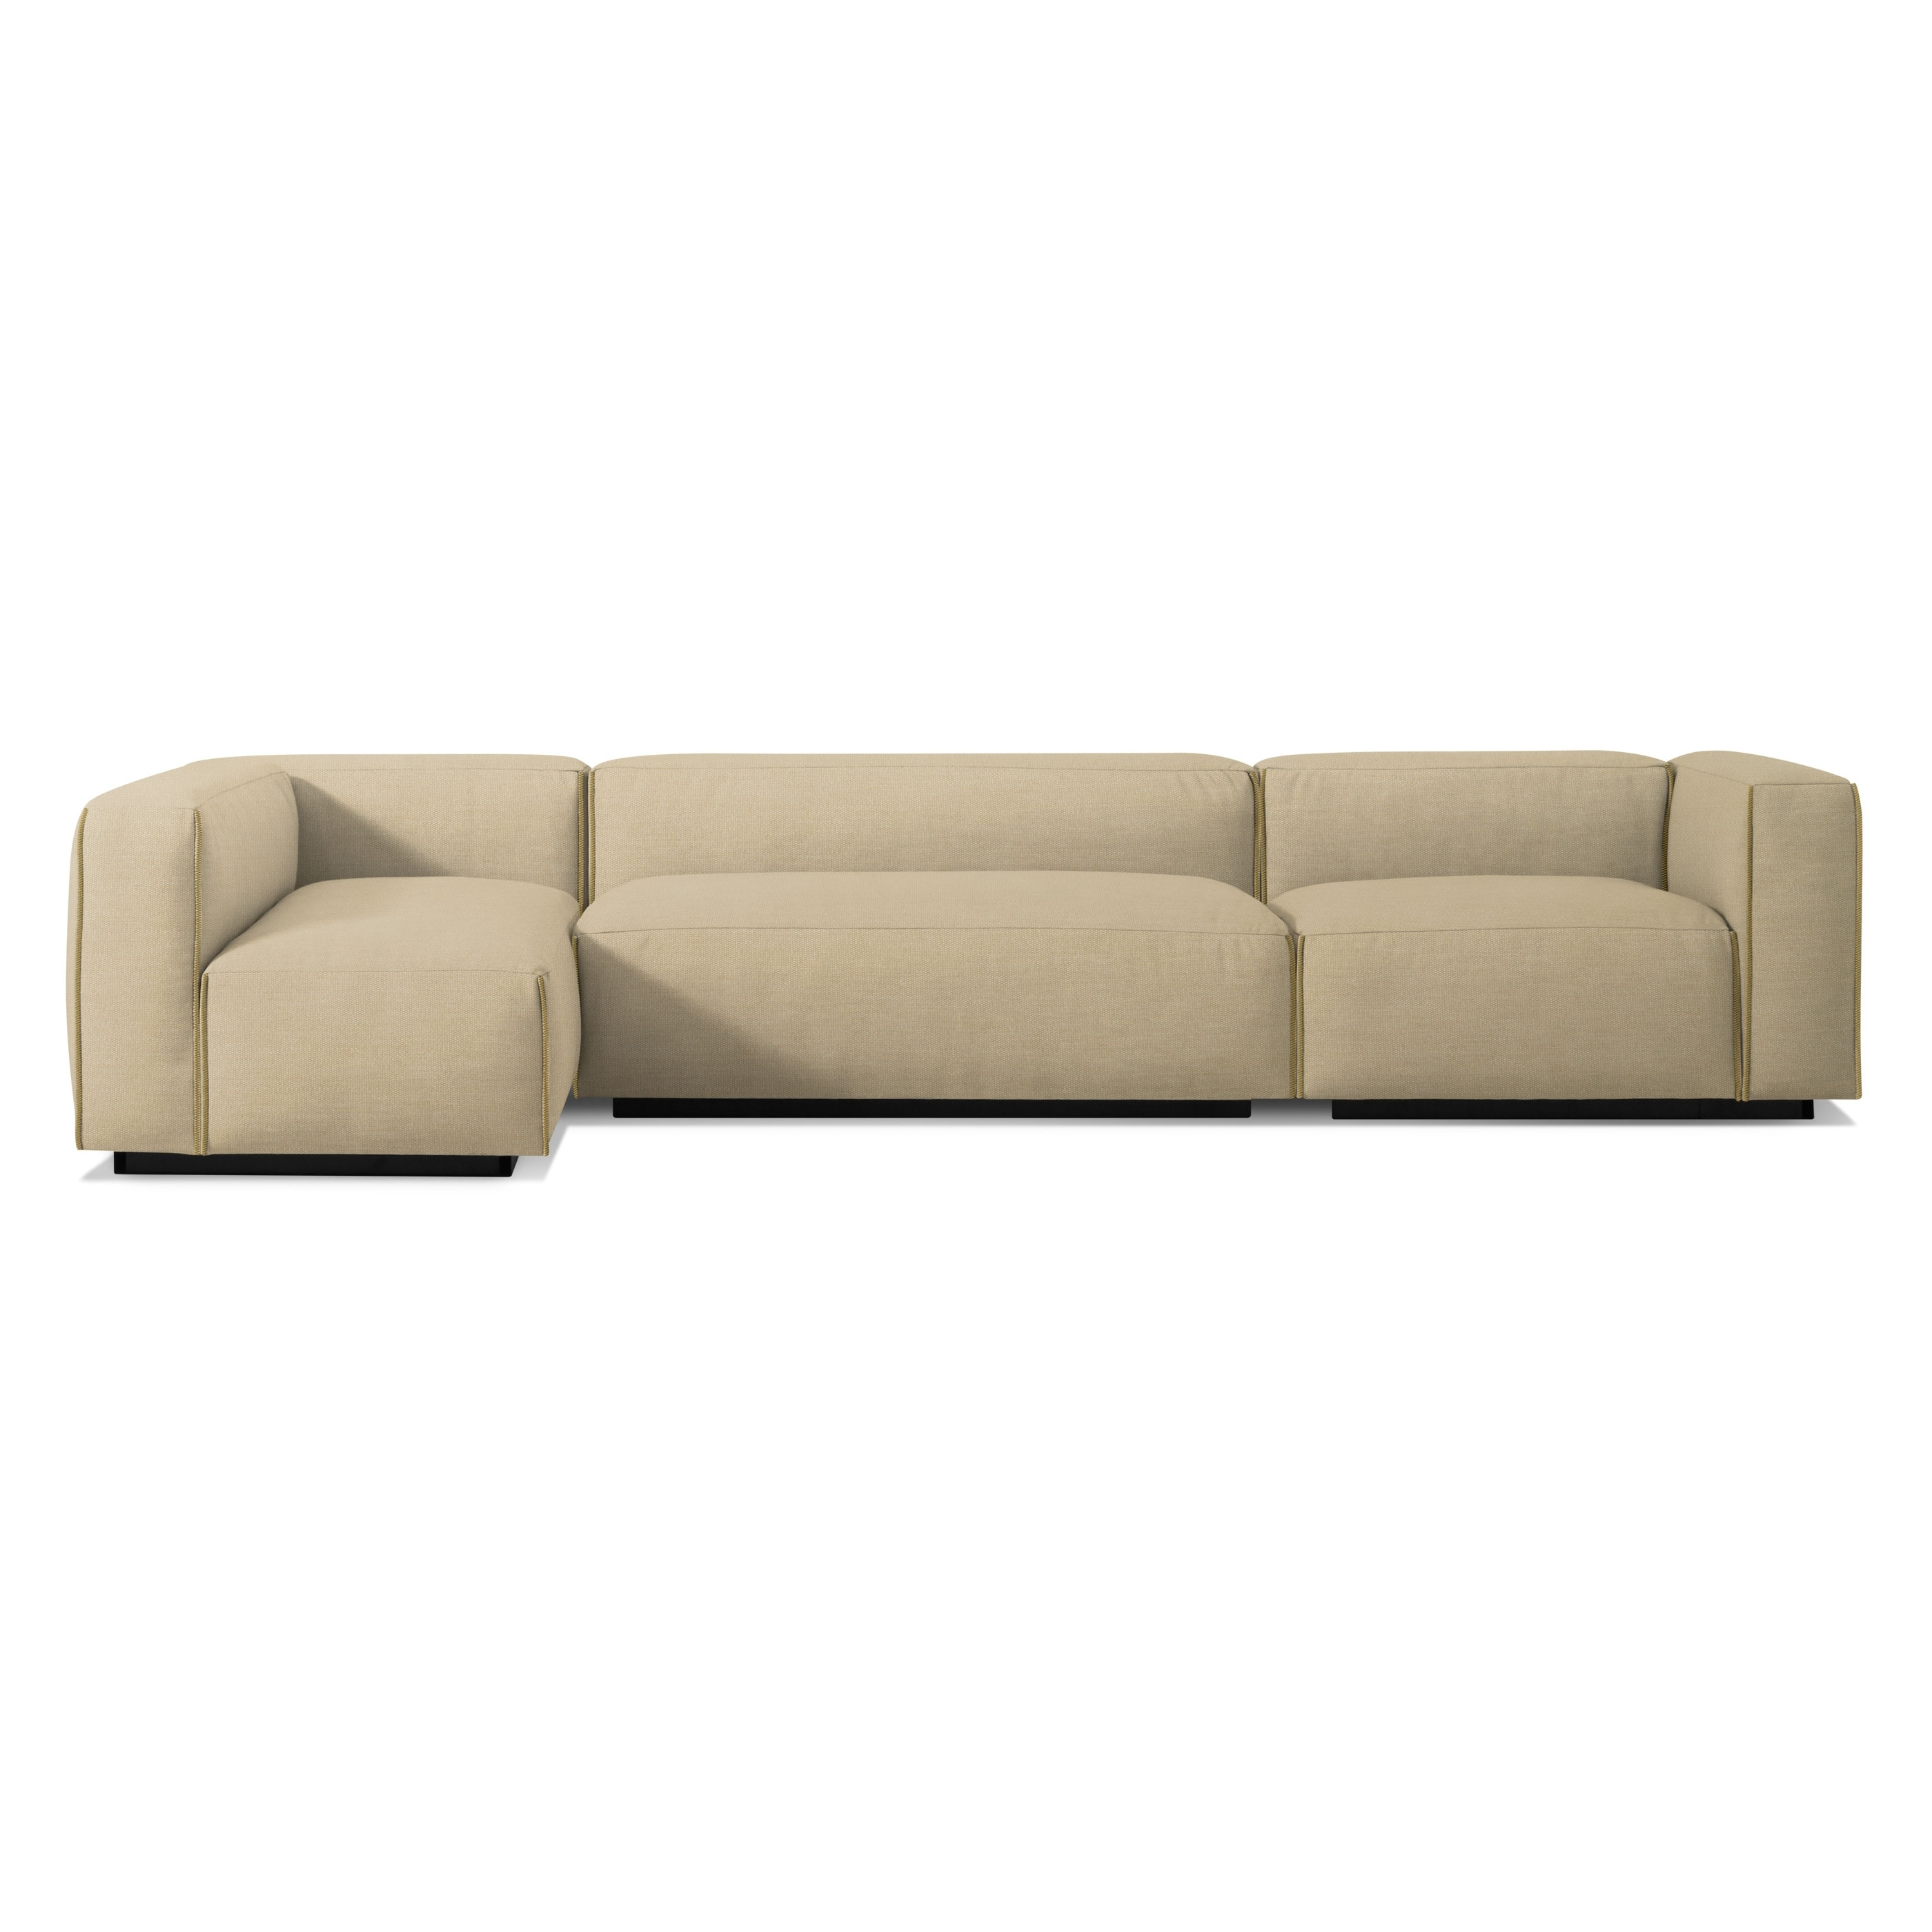 2018 Nova Scotia Sectional Sofas For Cleon Medium+ Sectional Sofa – Modern Sofas And Sectionals (View 1 of 20)